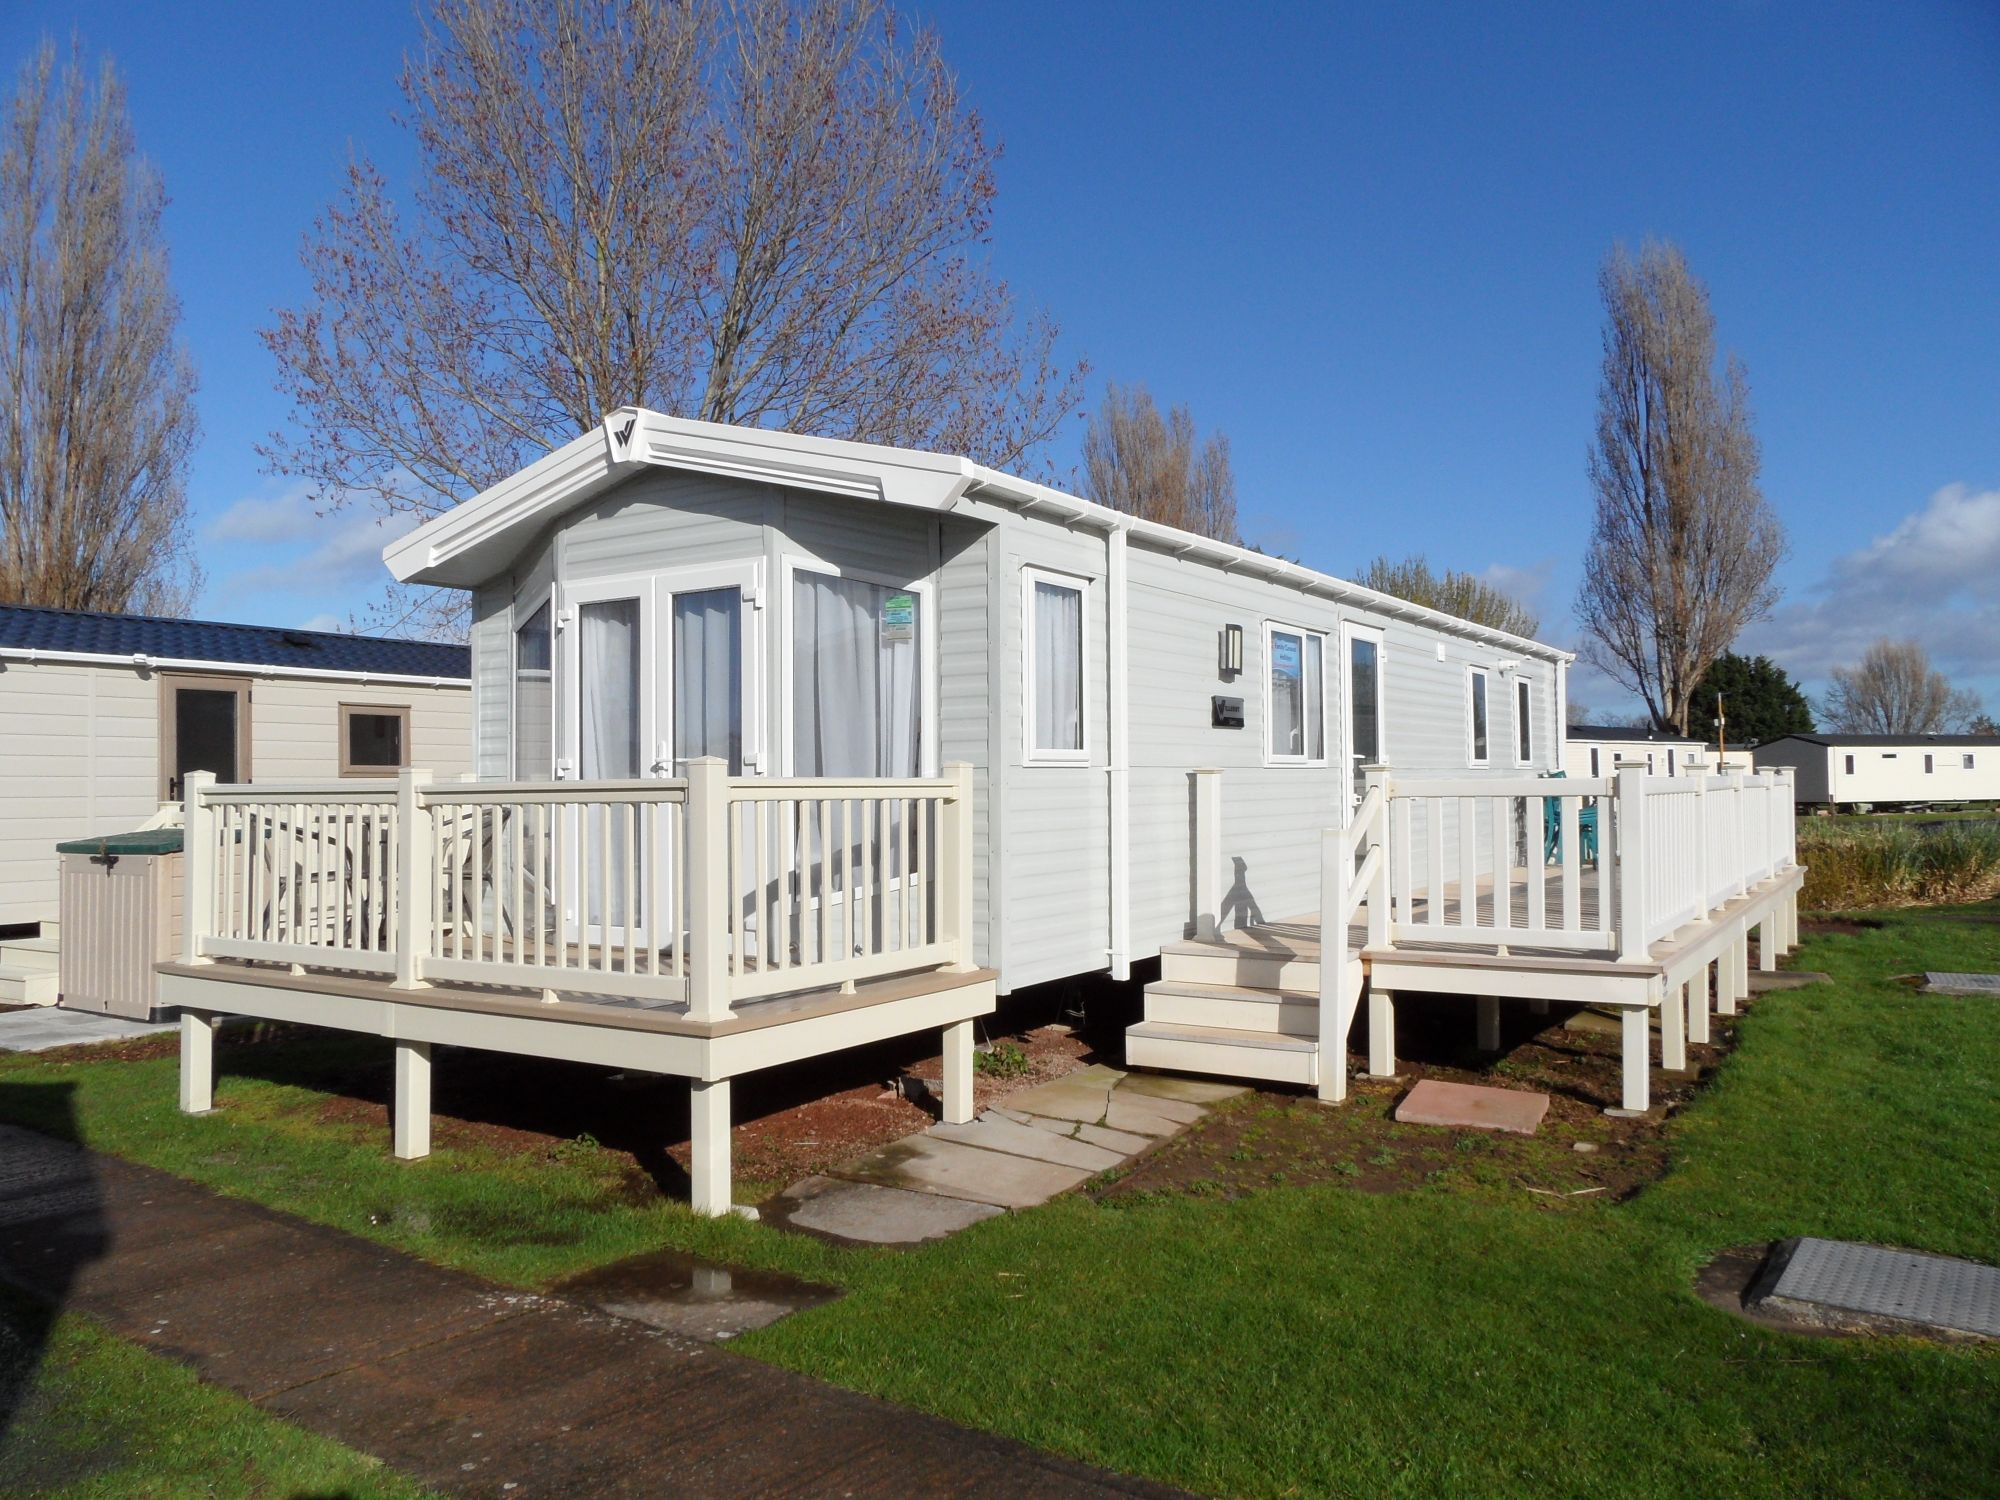 Butlins Minehead 3 Bedroom Caravan